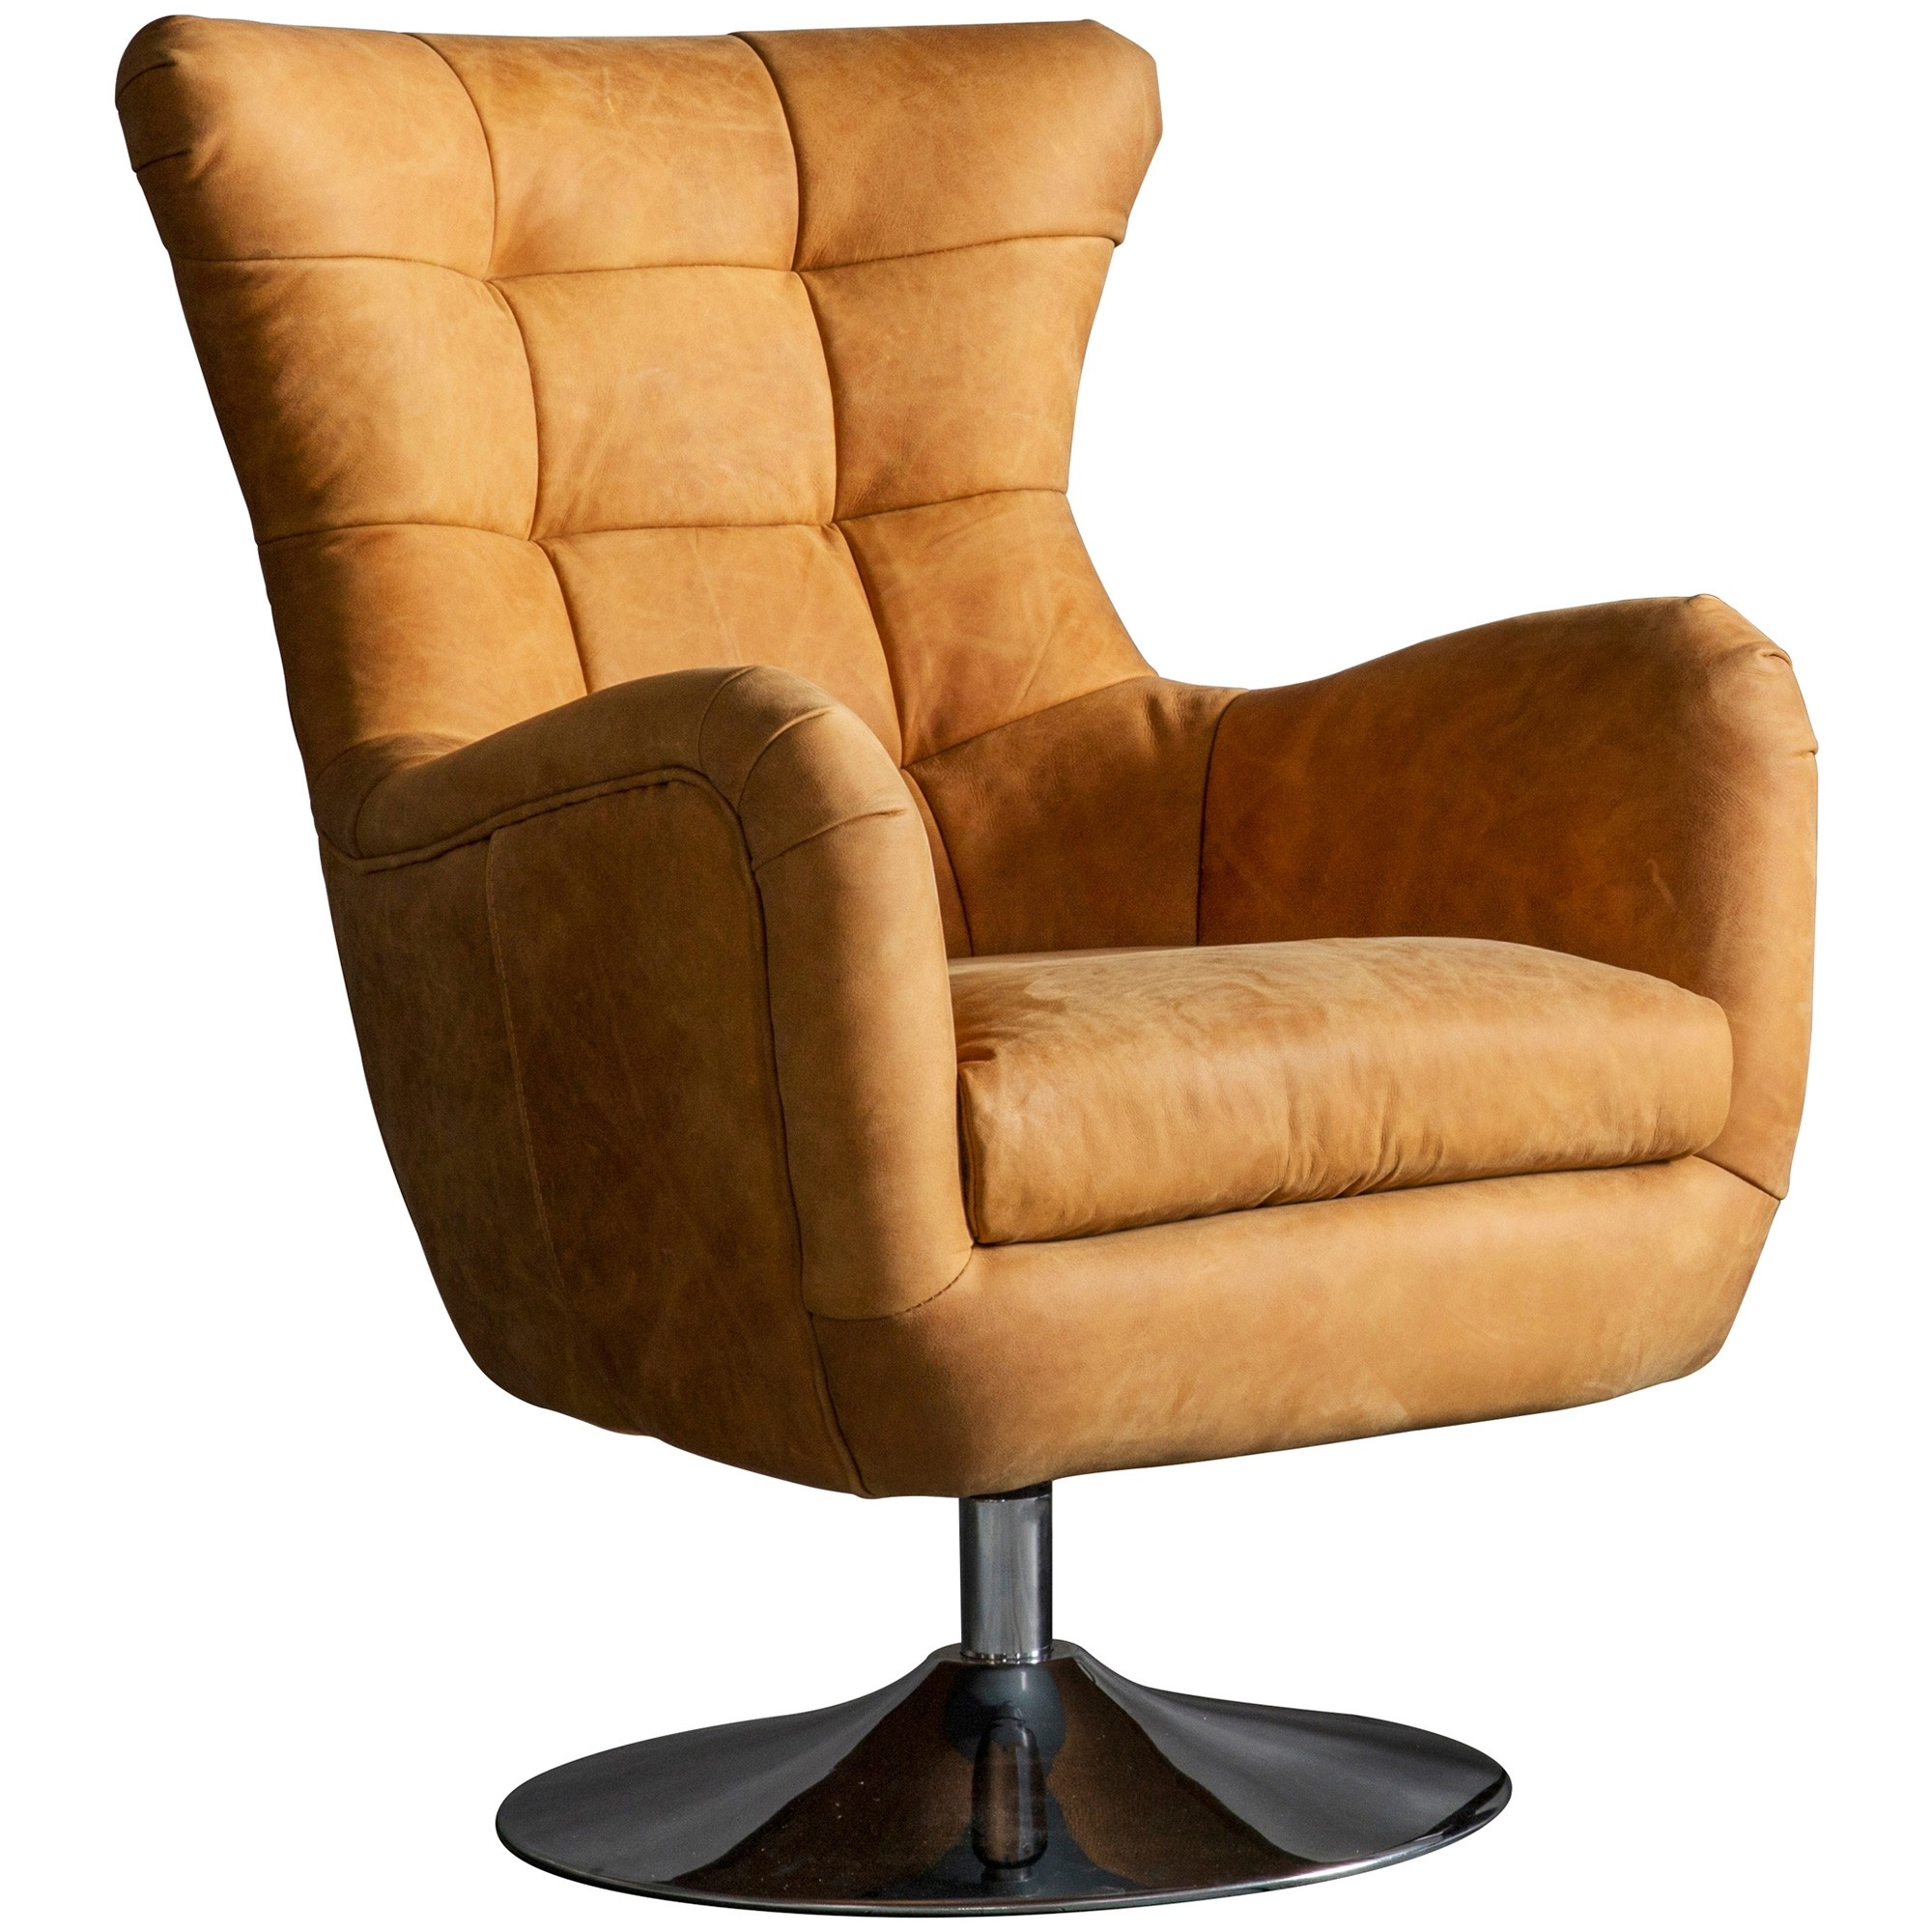 Birdine Luxurious Leather Uphostered Swivel Armchair, Saddle Tan